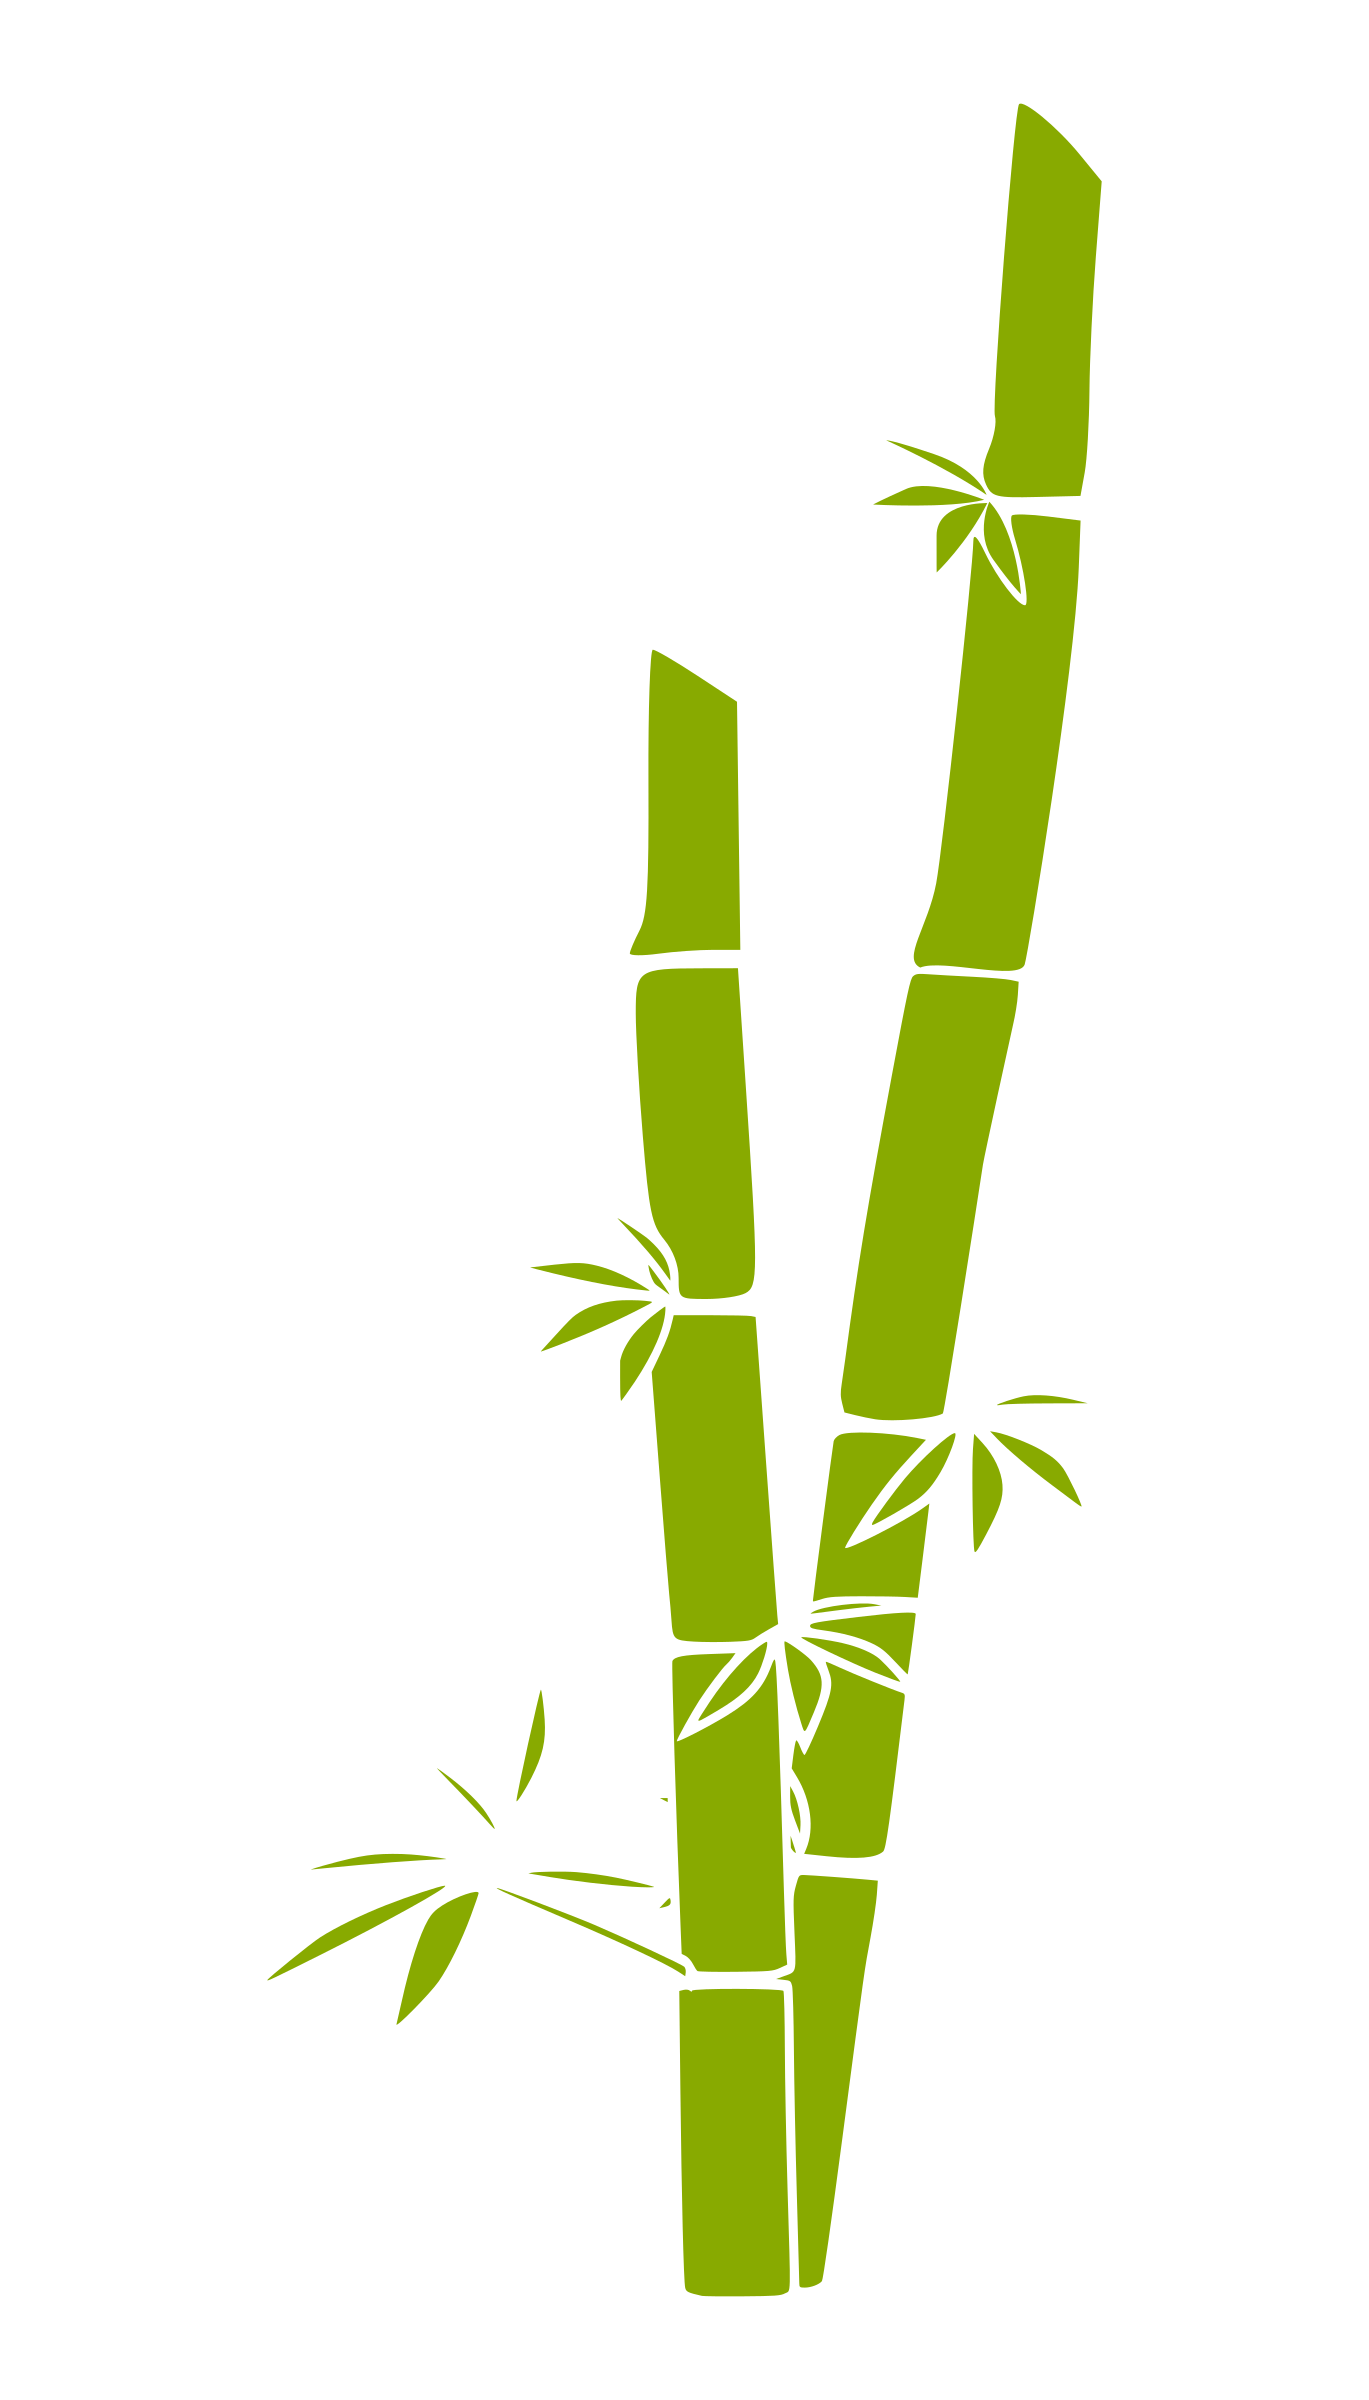 png library library Bamboo clipart. Big image png.